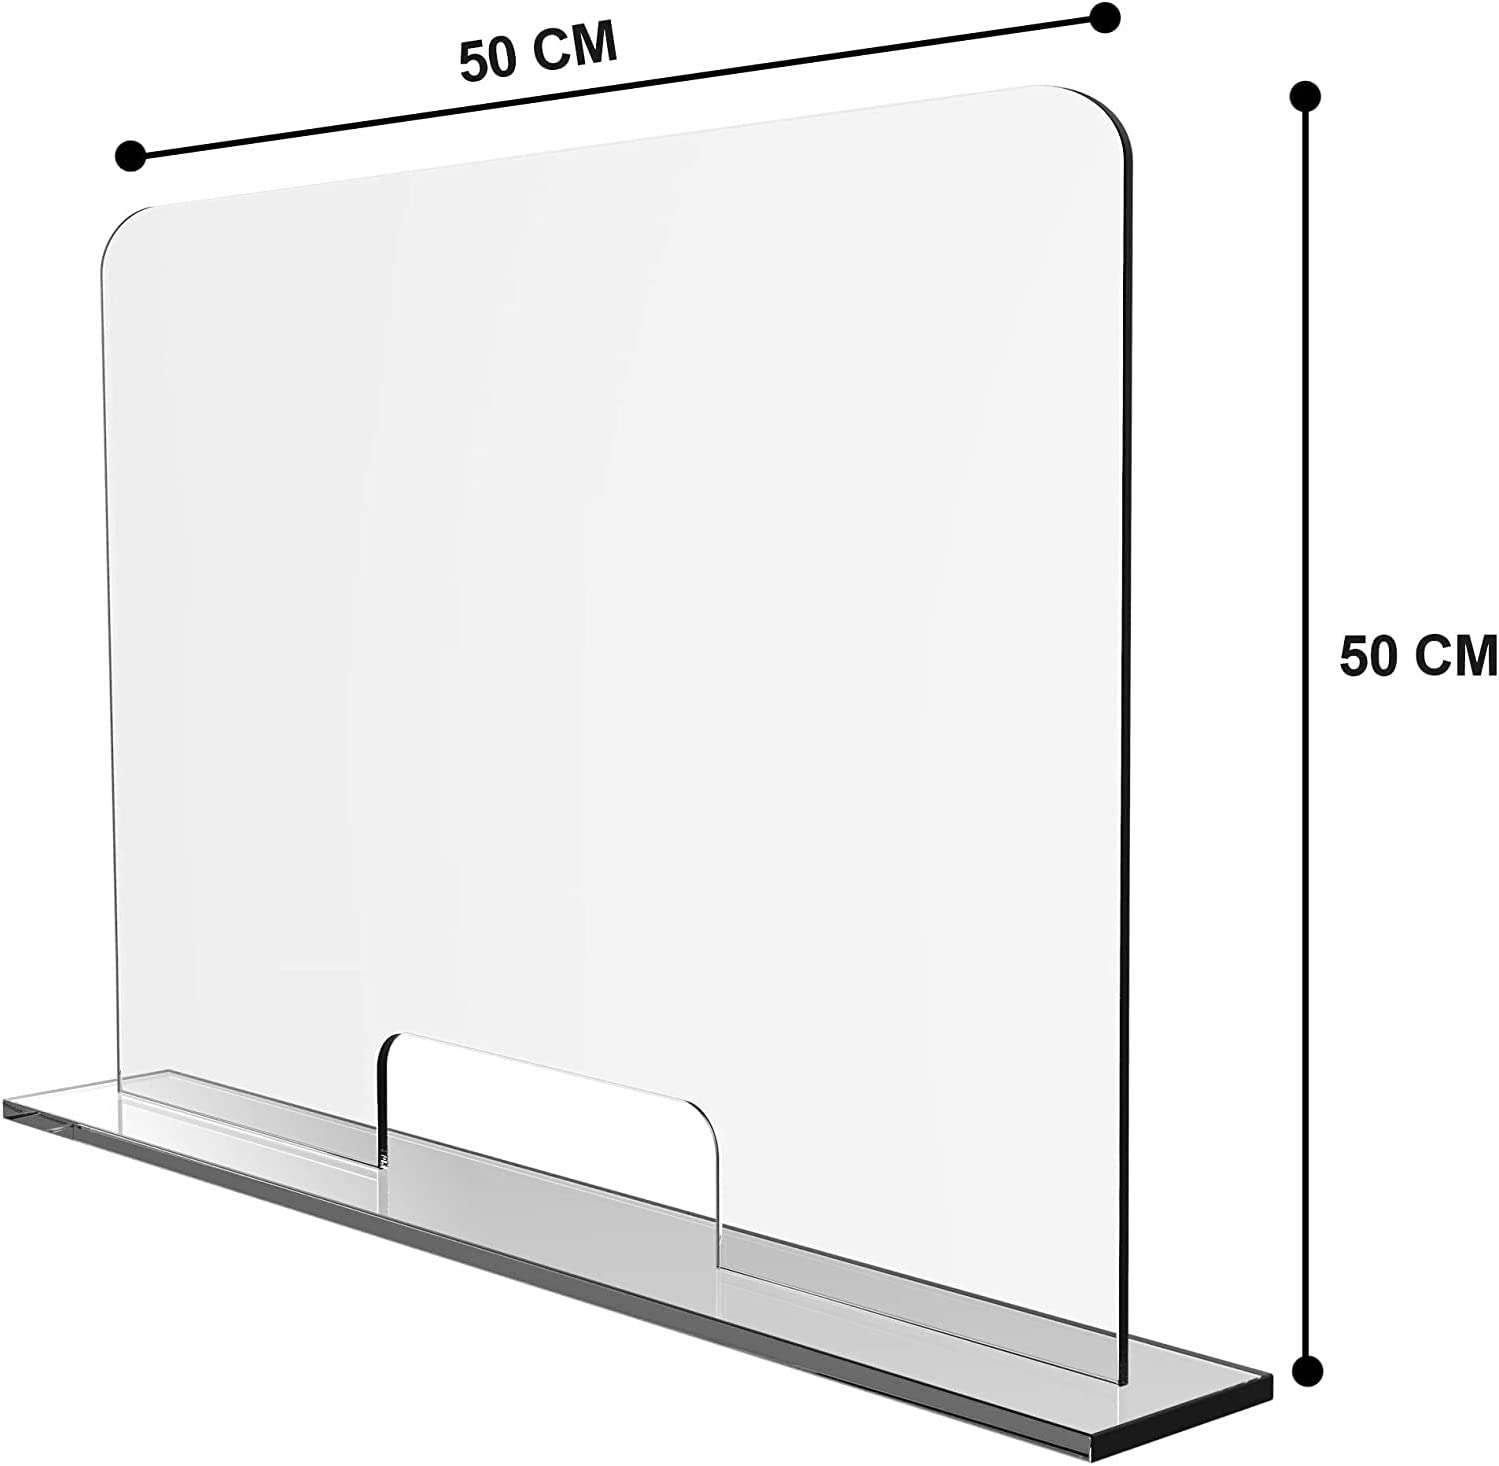 Droplets Protection Sneeze Guard Bar Top with Hatch Sneeze Guard Table Top Counter Top for Pharmacies and Medical Practices Counter Display Protector,30 x 50 cm Spit Protection Bar Top